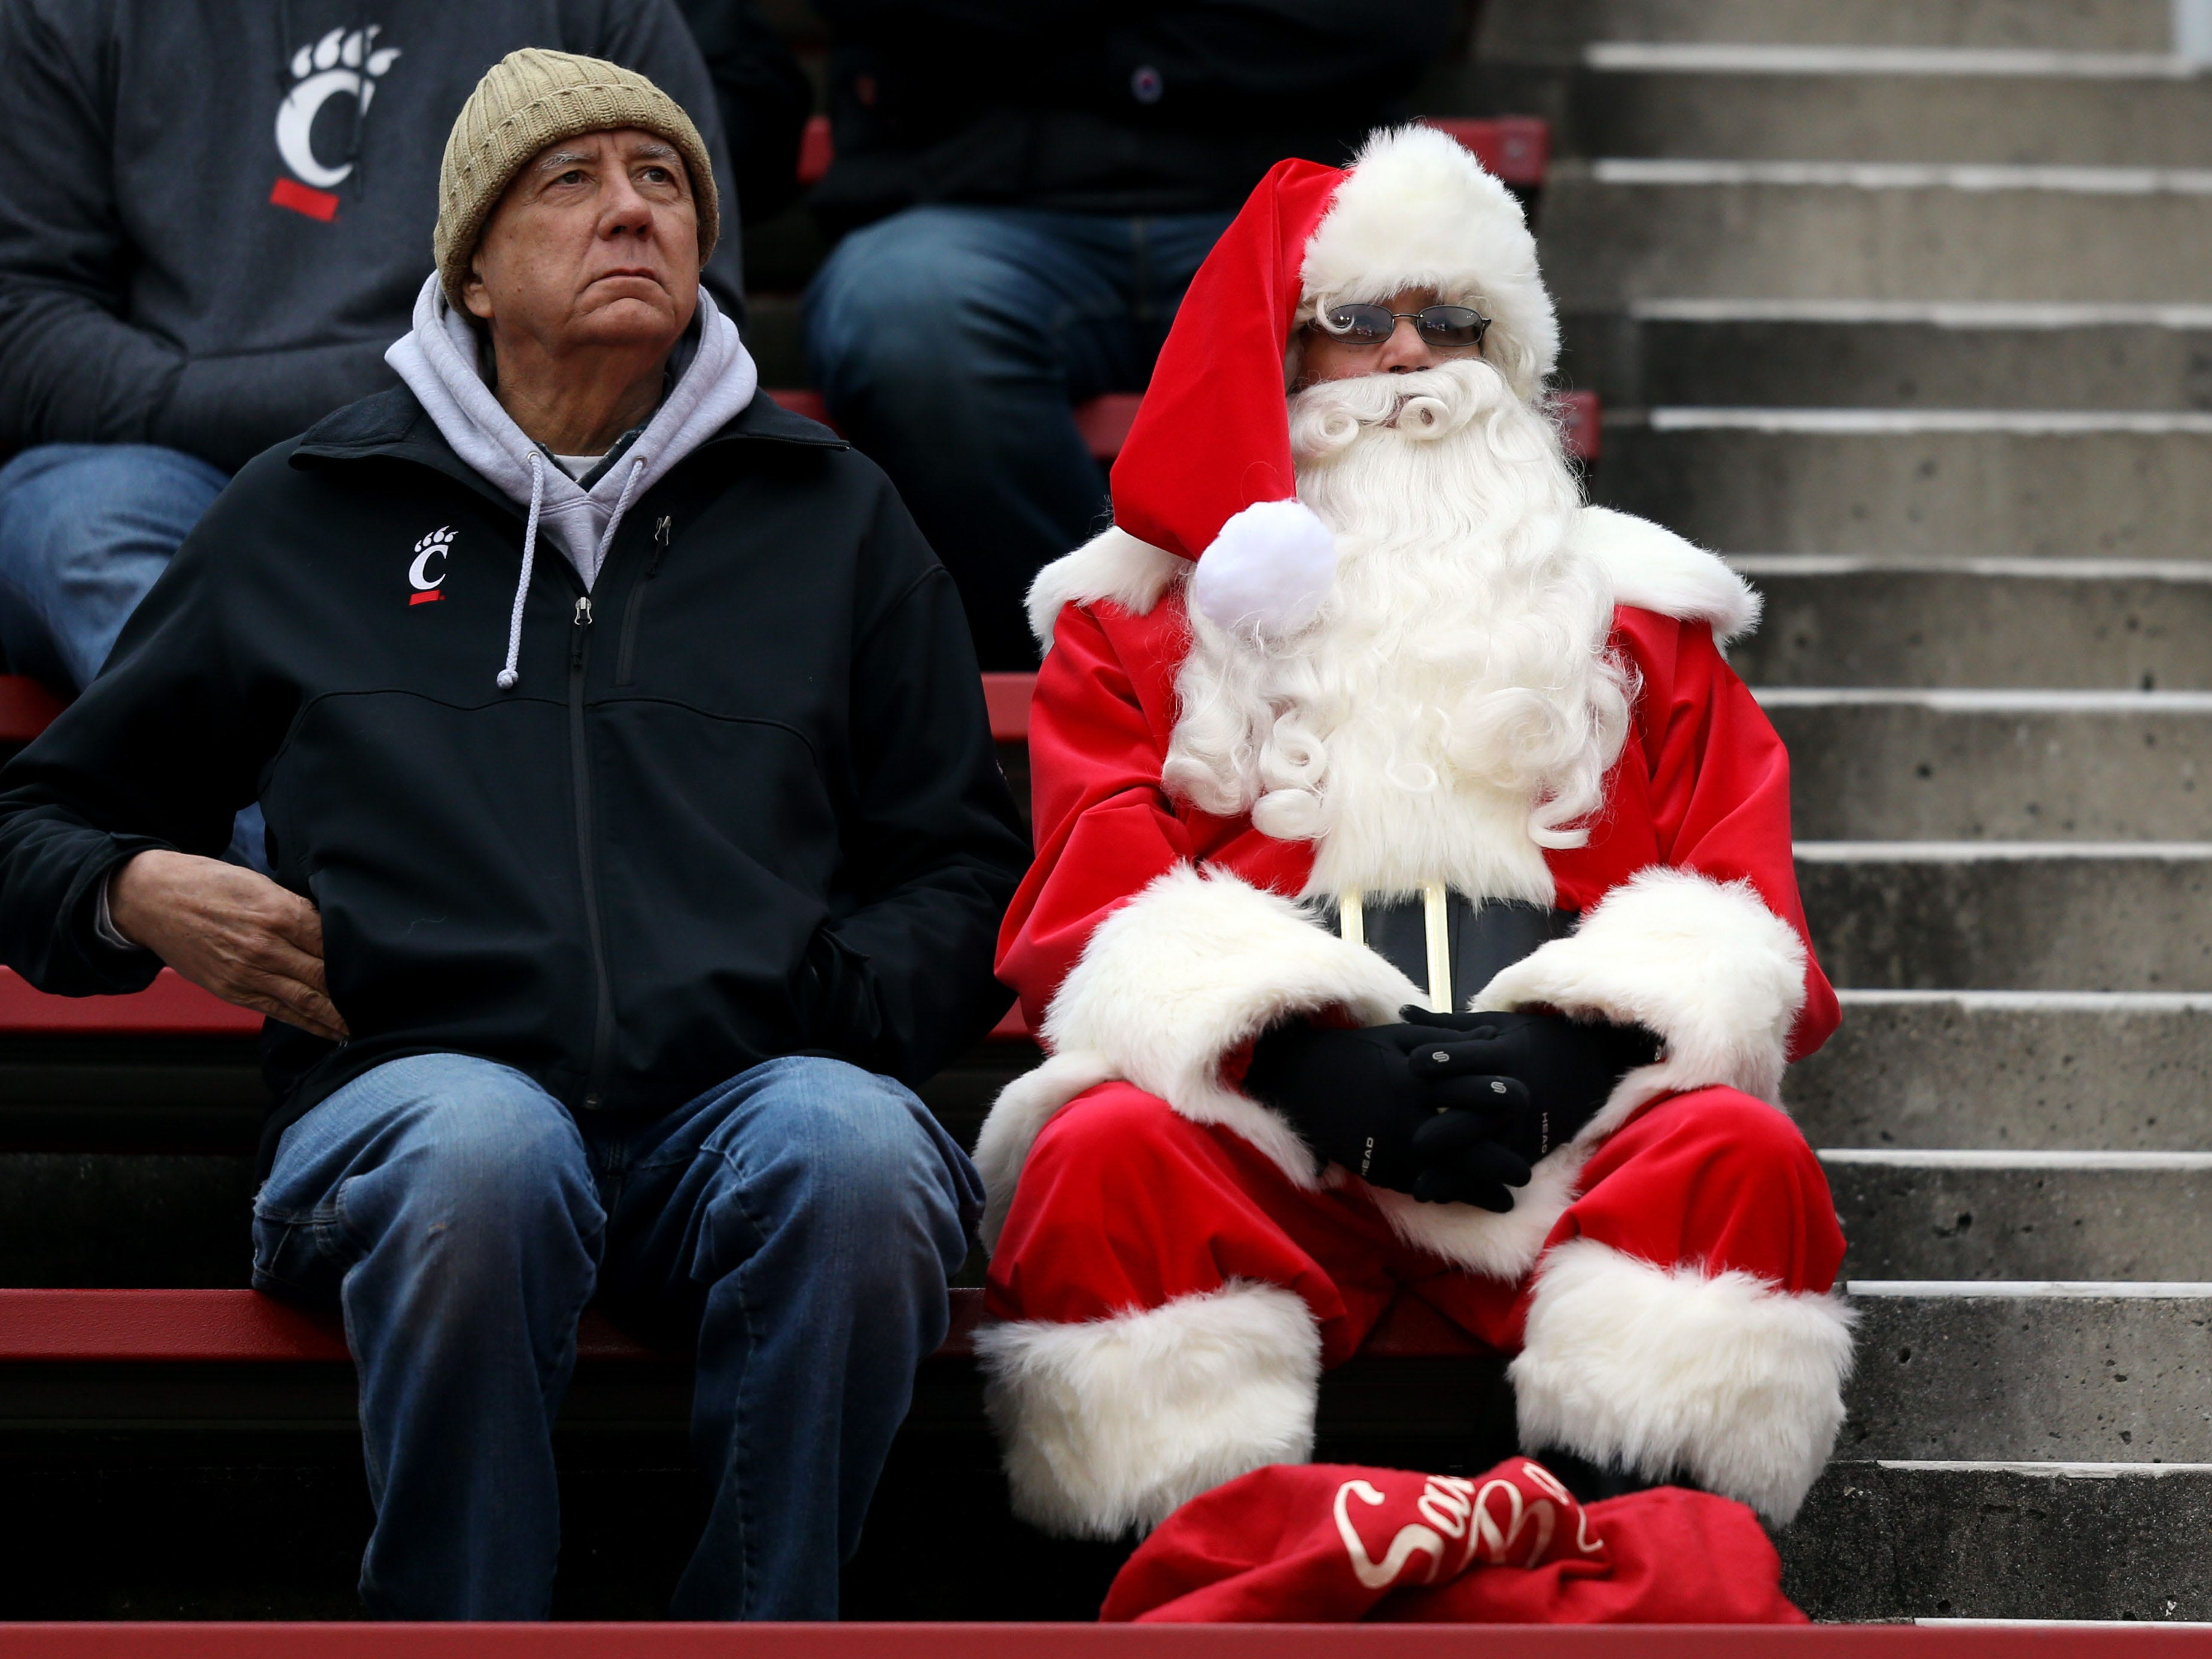 A fan dressed as Santa Claus sits in the stands during the game between the East Carolina Pirates and the Cincinnati Bearcats in Cincinnati, Ohio, Nov. 23, 2018.